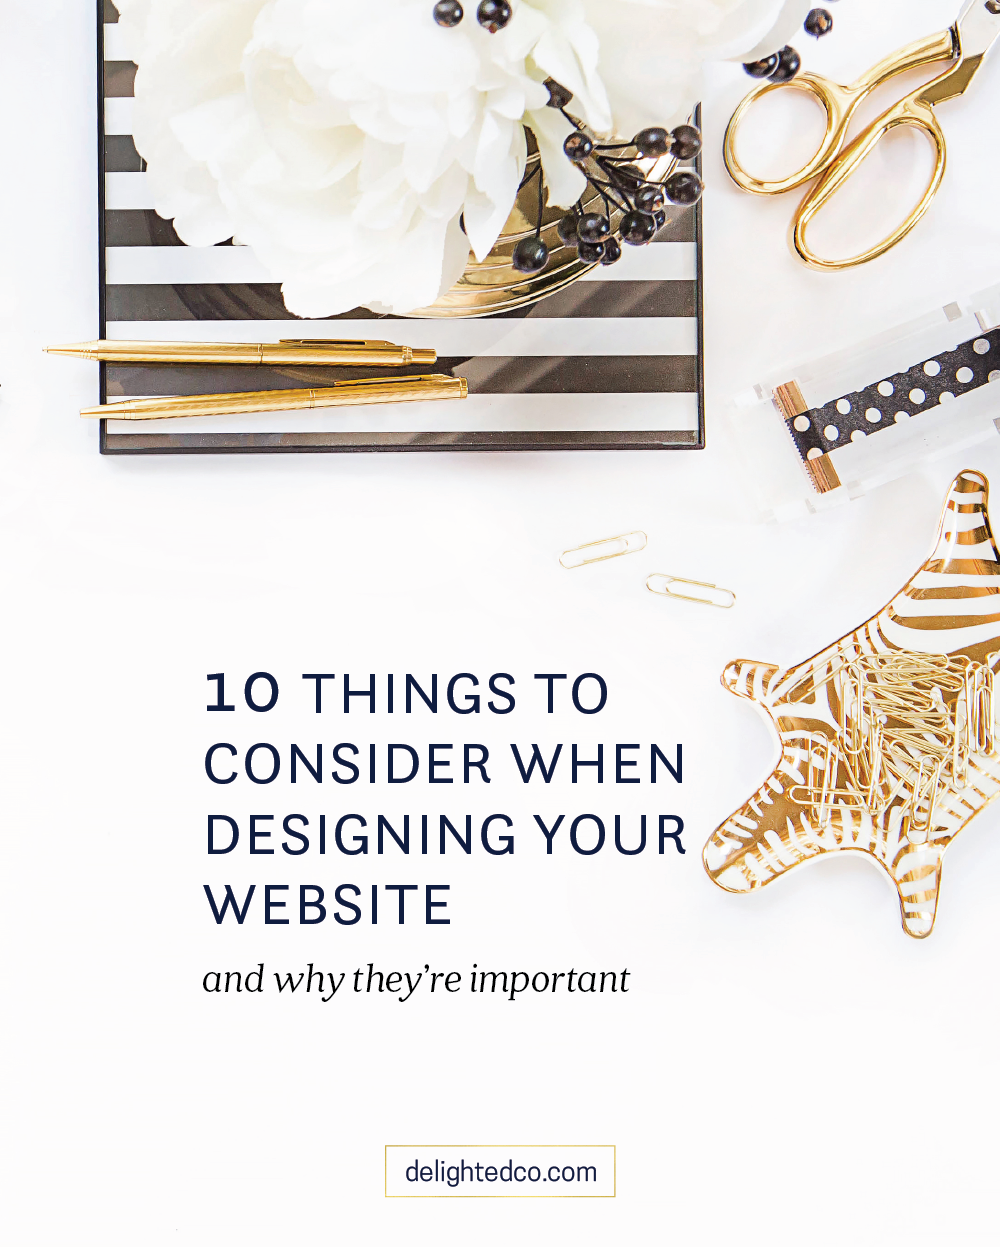 Here are 10 things to consider when designing your website: 1. White Space 2. Photos 3. Good Writing 4. Fonts 5. Cohesion 6. Clear Navigation 7. Contact Info 8. Social Media 9. Links 10. Call to Action. Read more about each at delightedco.com/blog